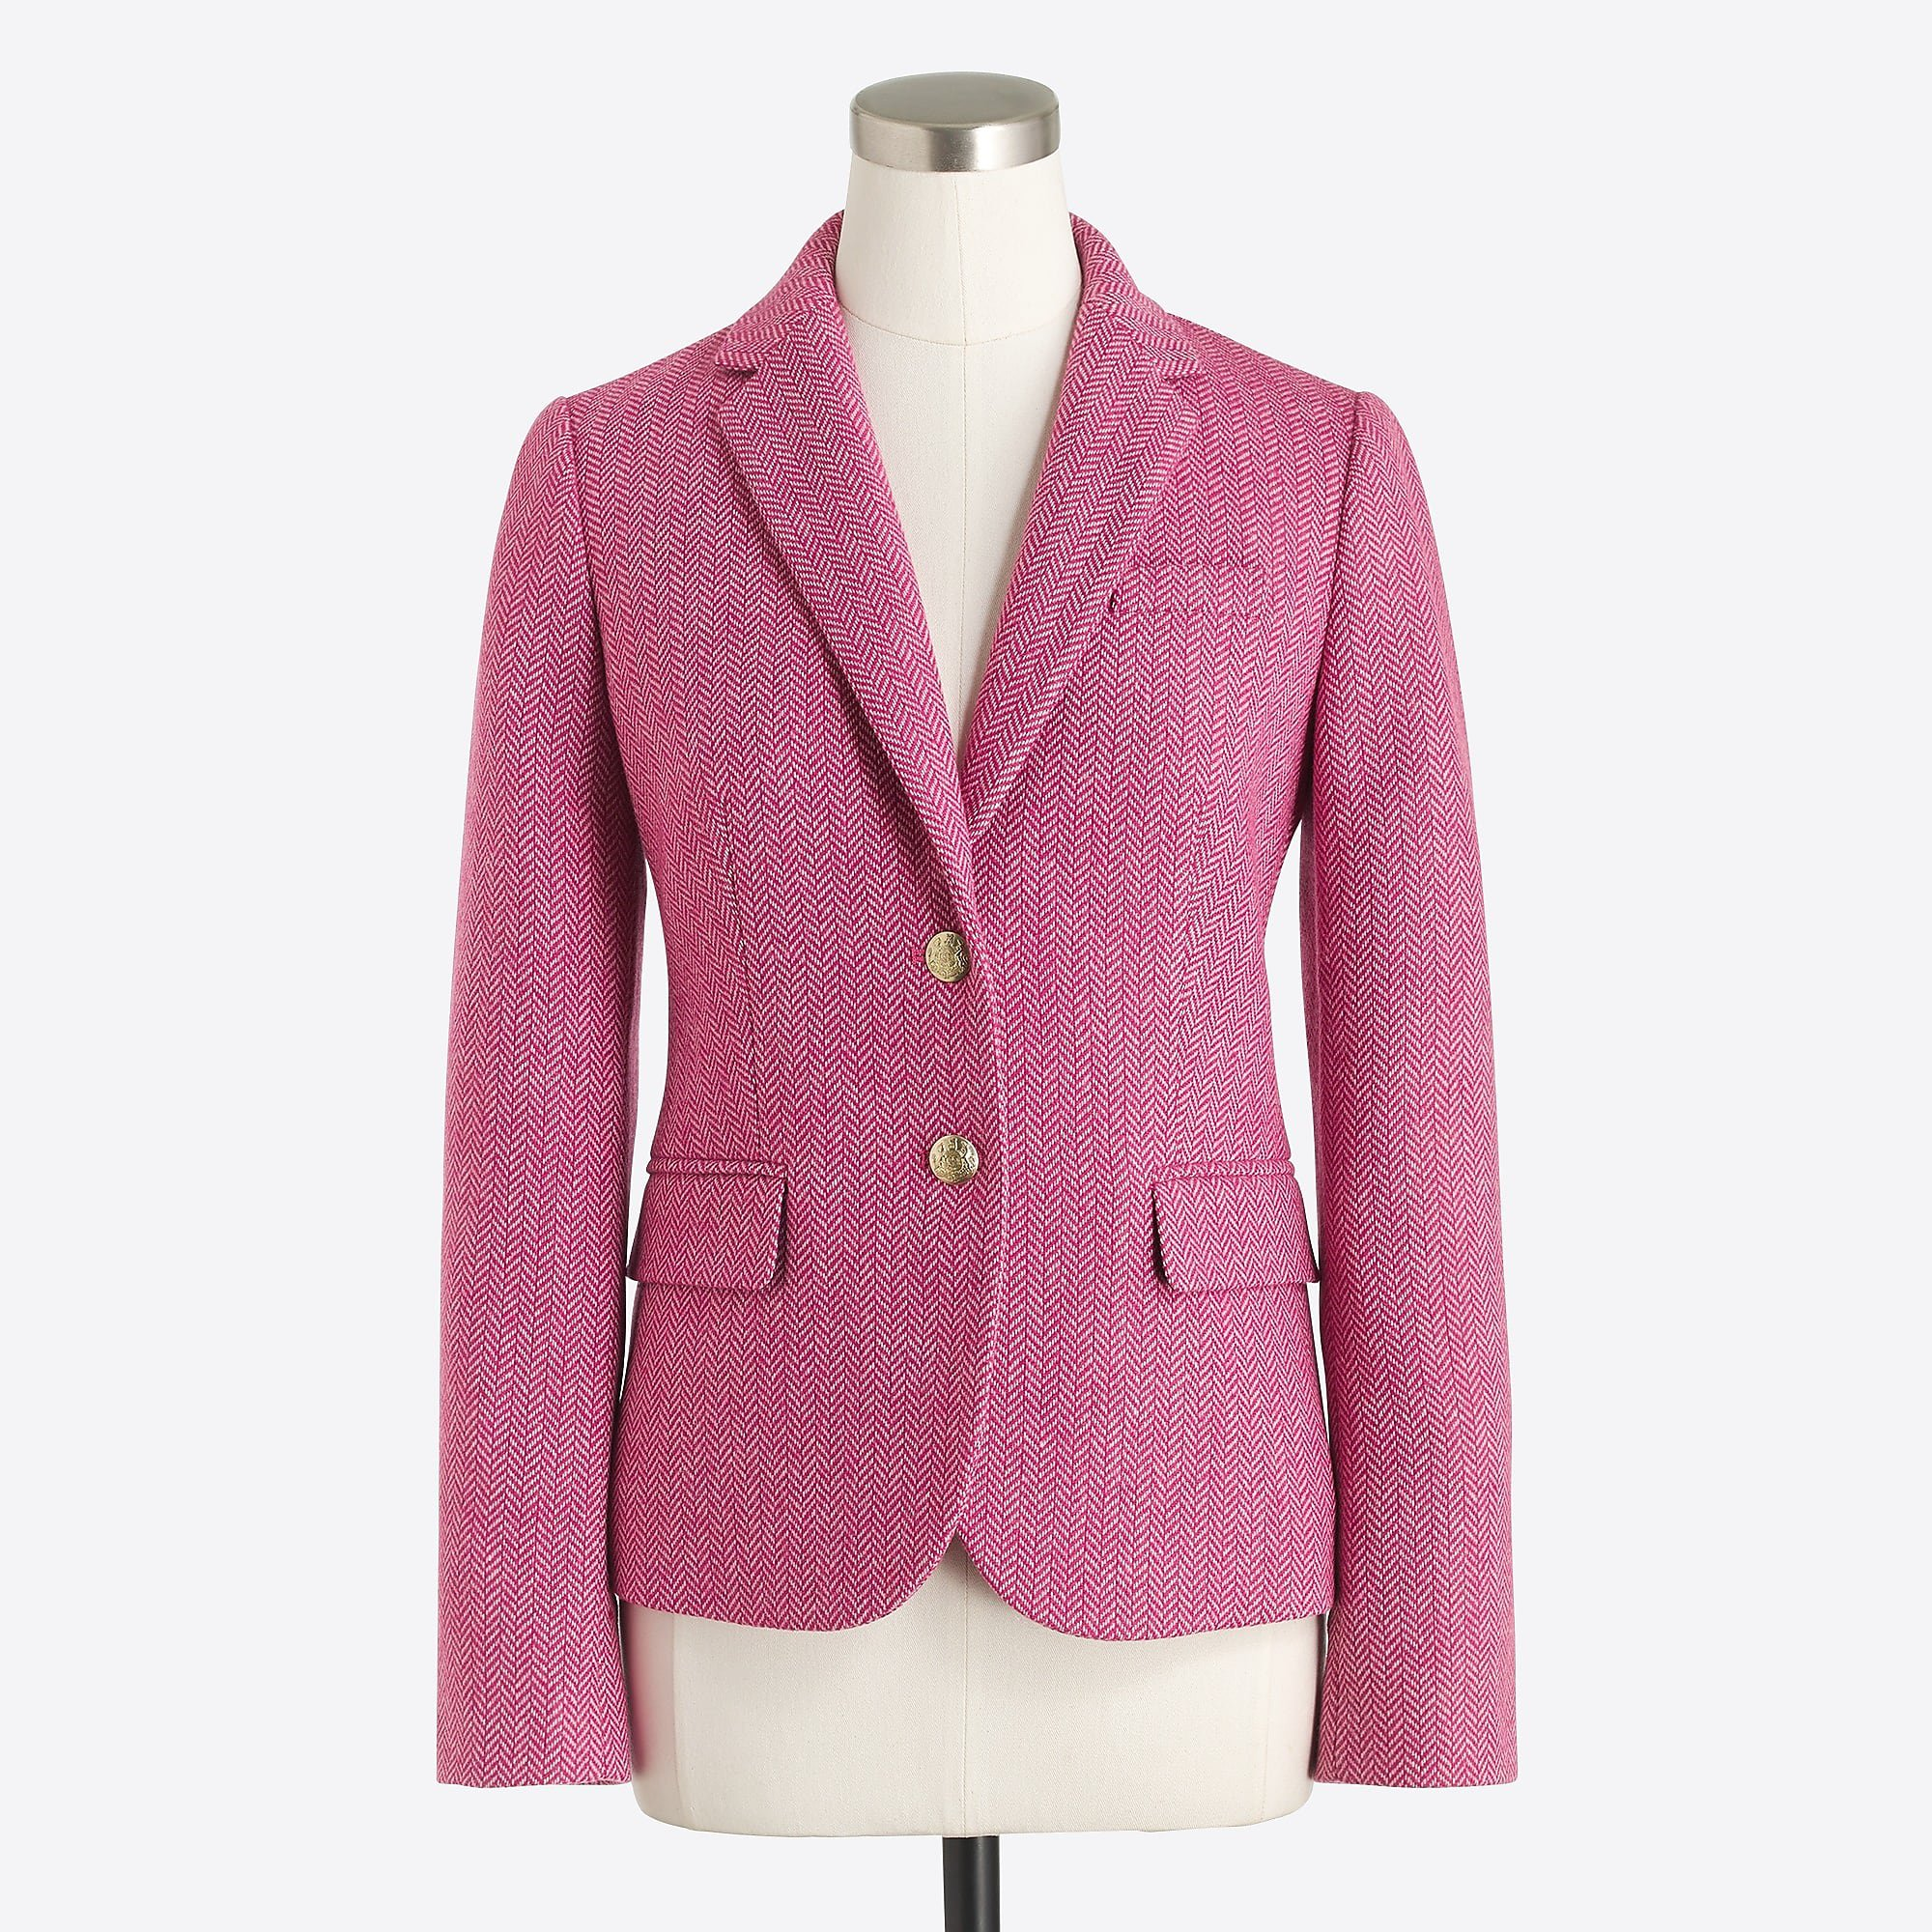 J.Crew Factory: Patterned schoolboy blazer